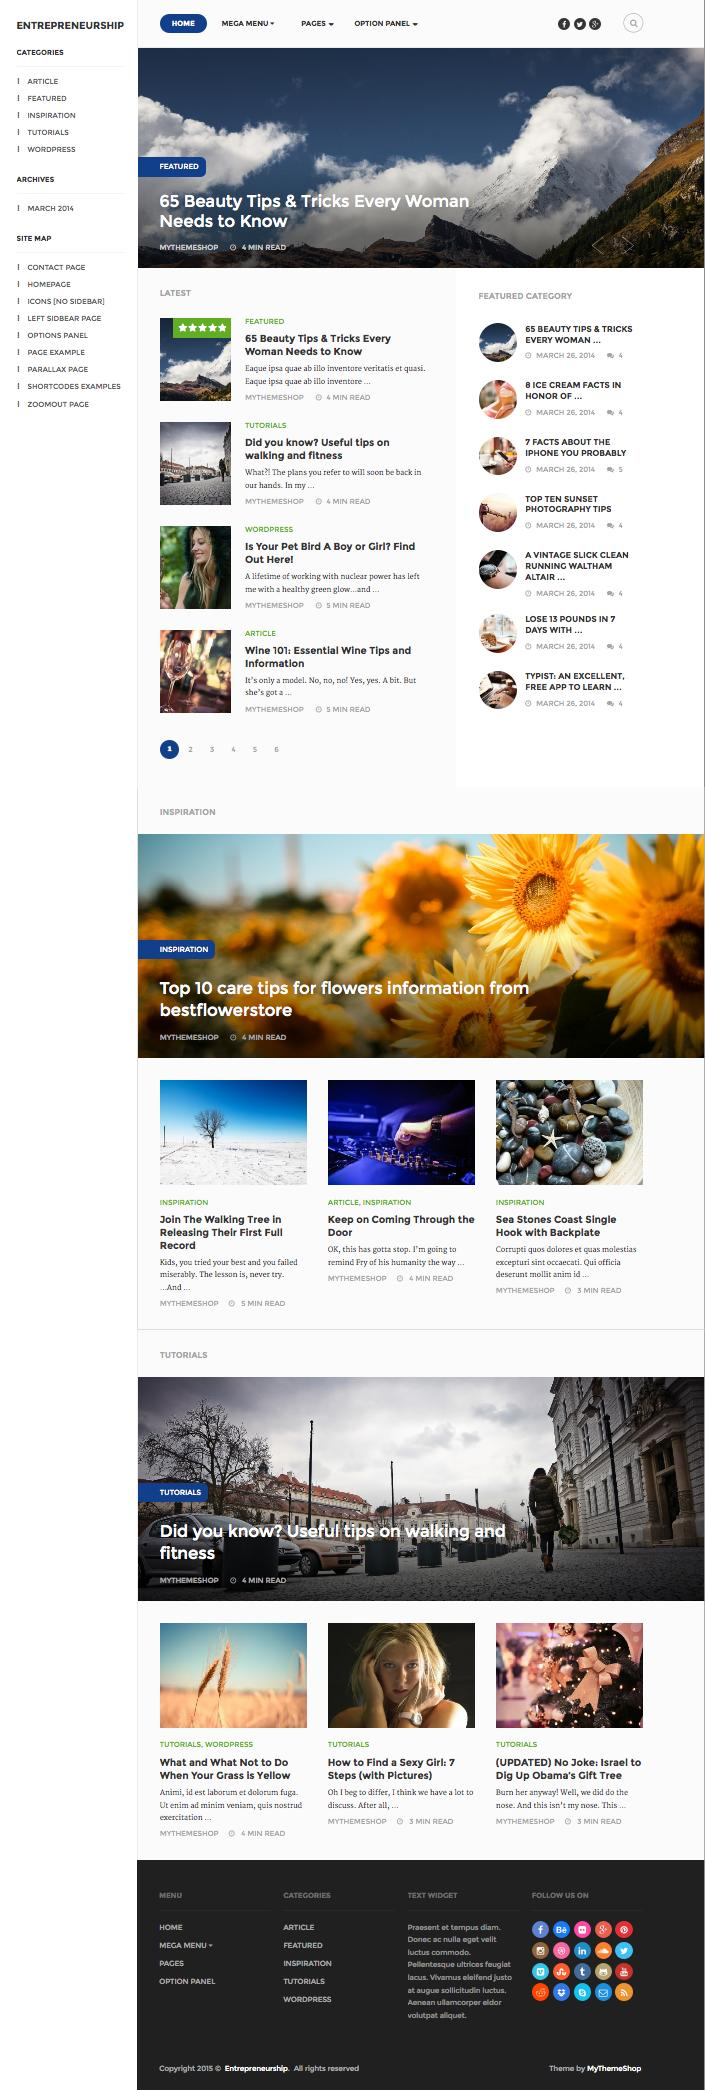 Entrepreneurship WordPress SEO Optimized Magazine Theme